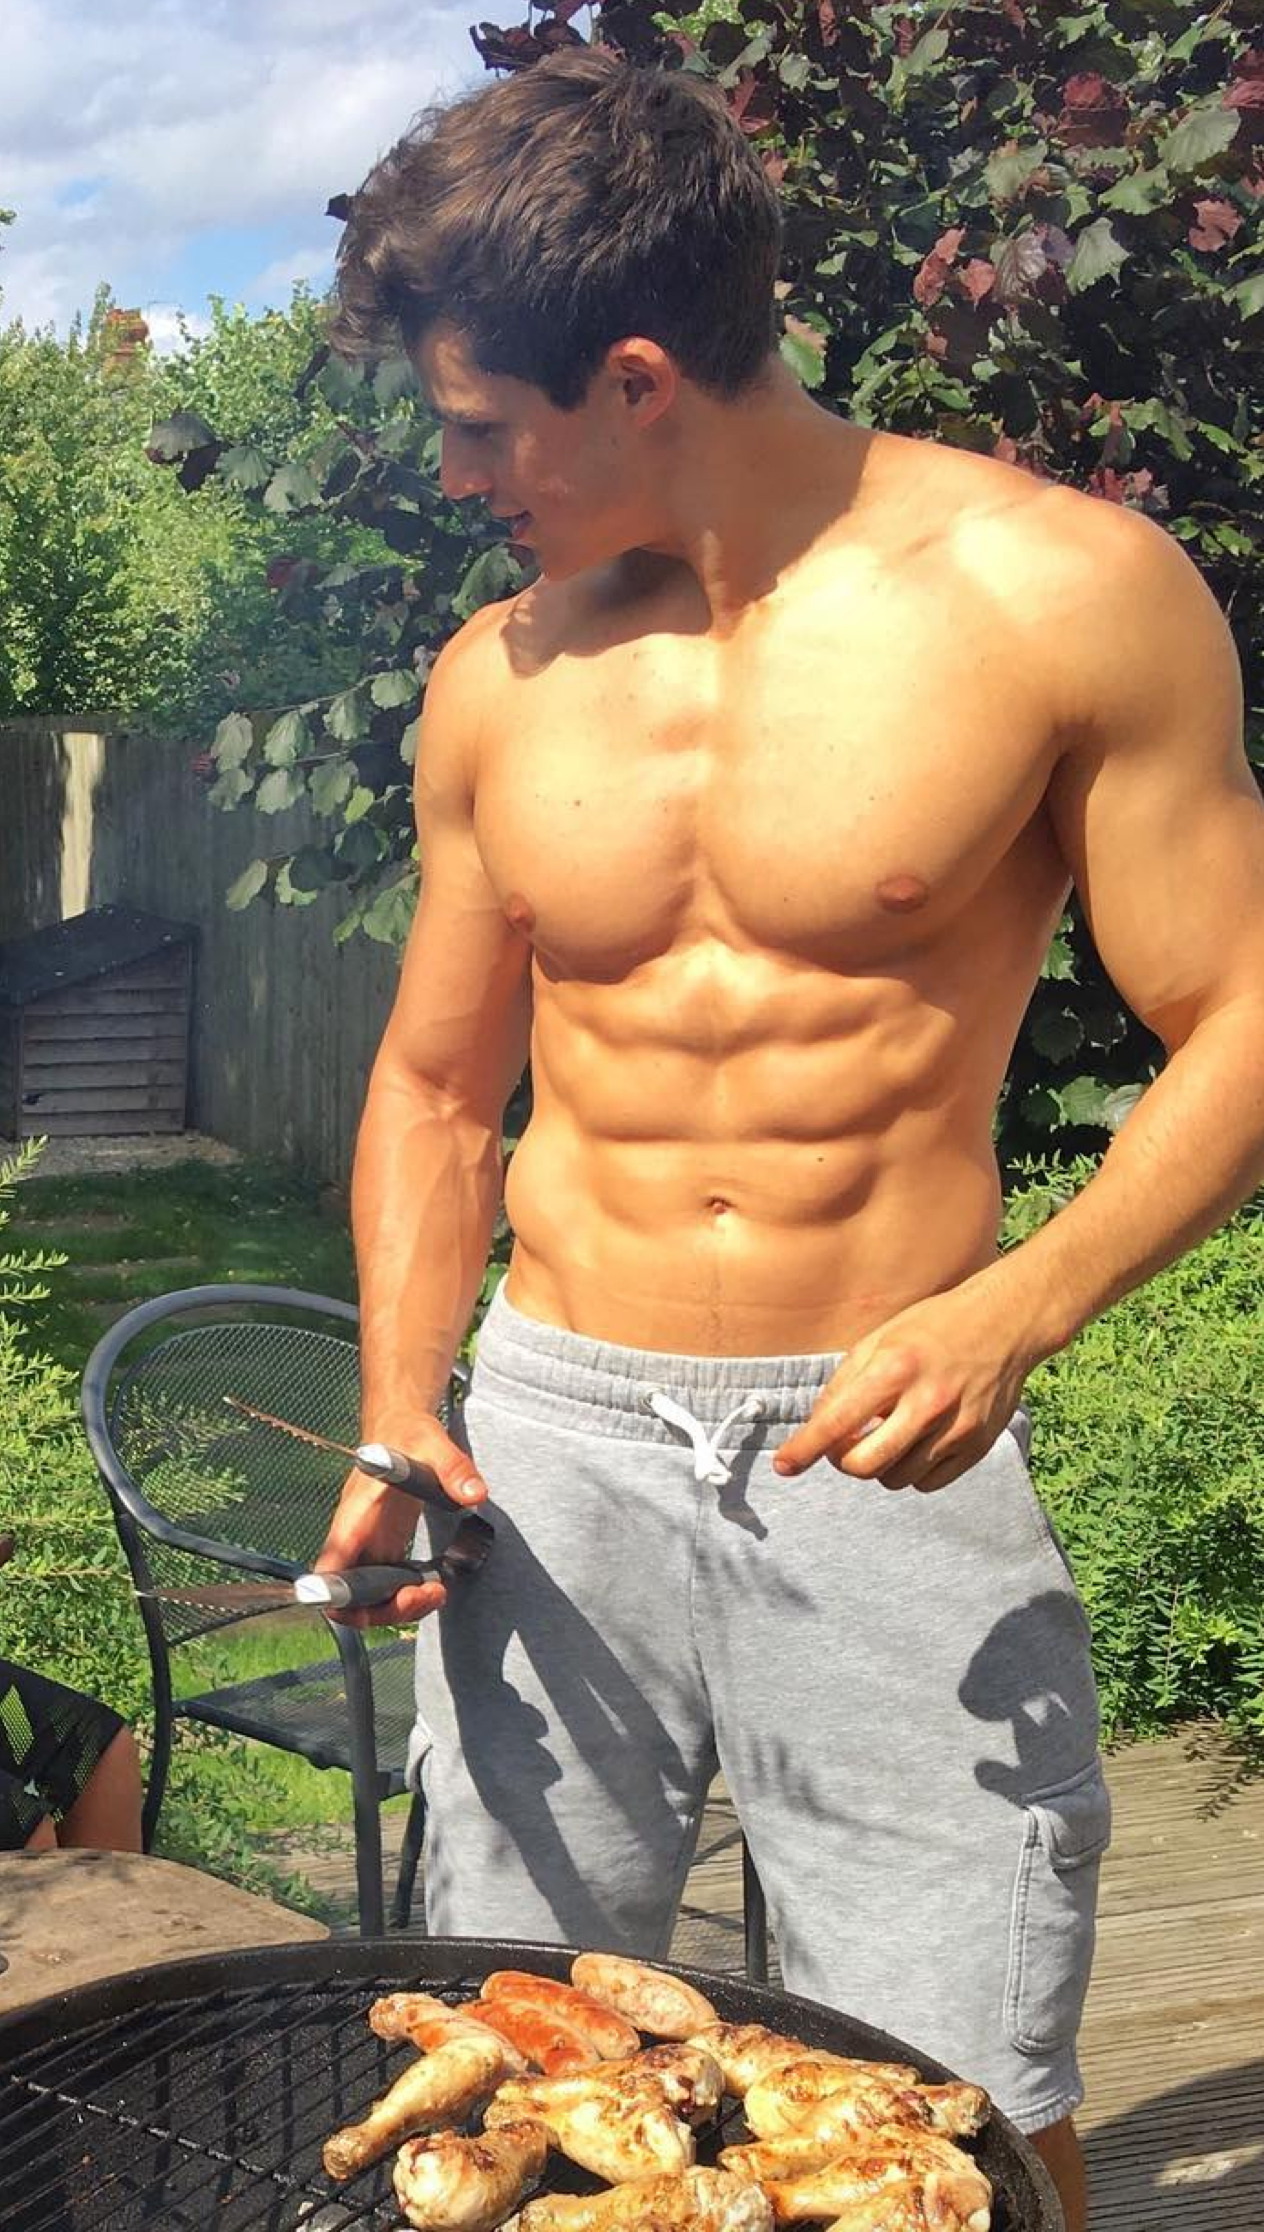 Patrick Mitchell | Fit Males Shirtless & Naked